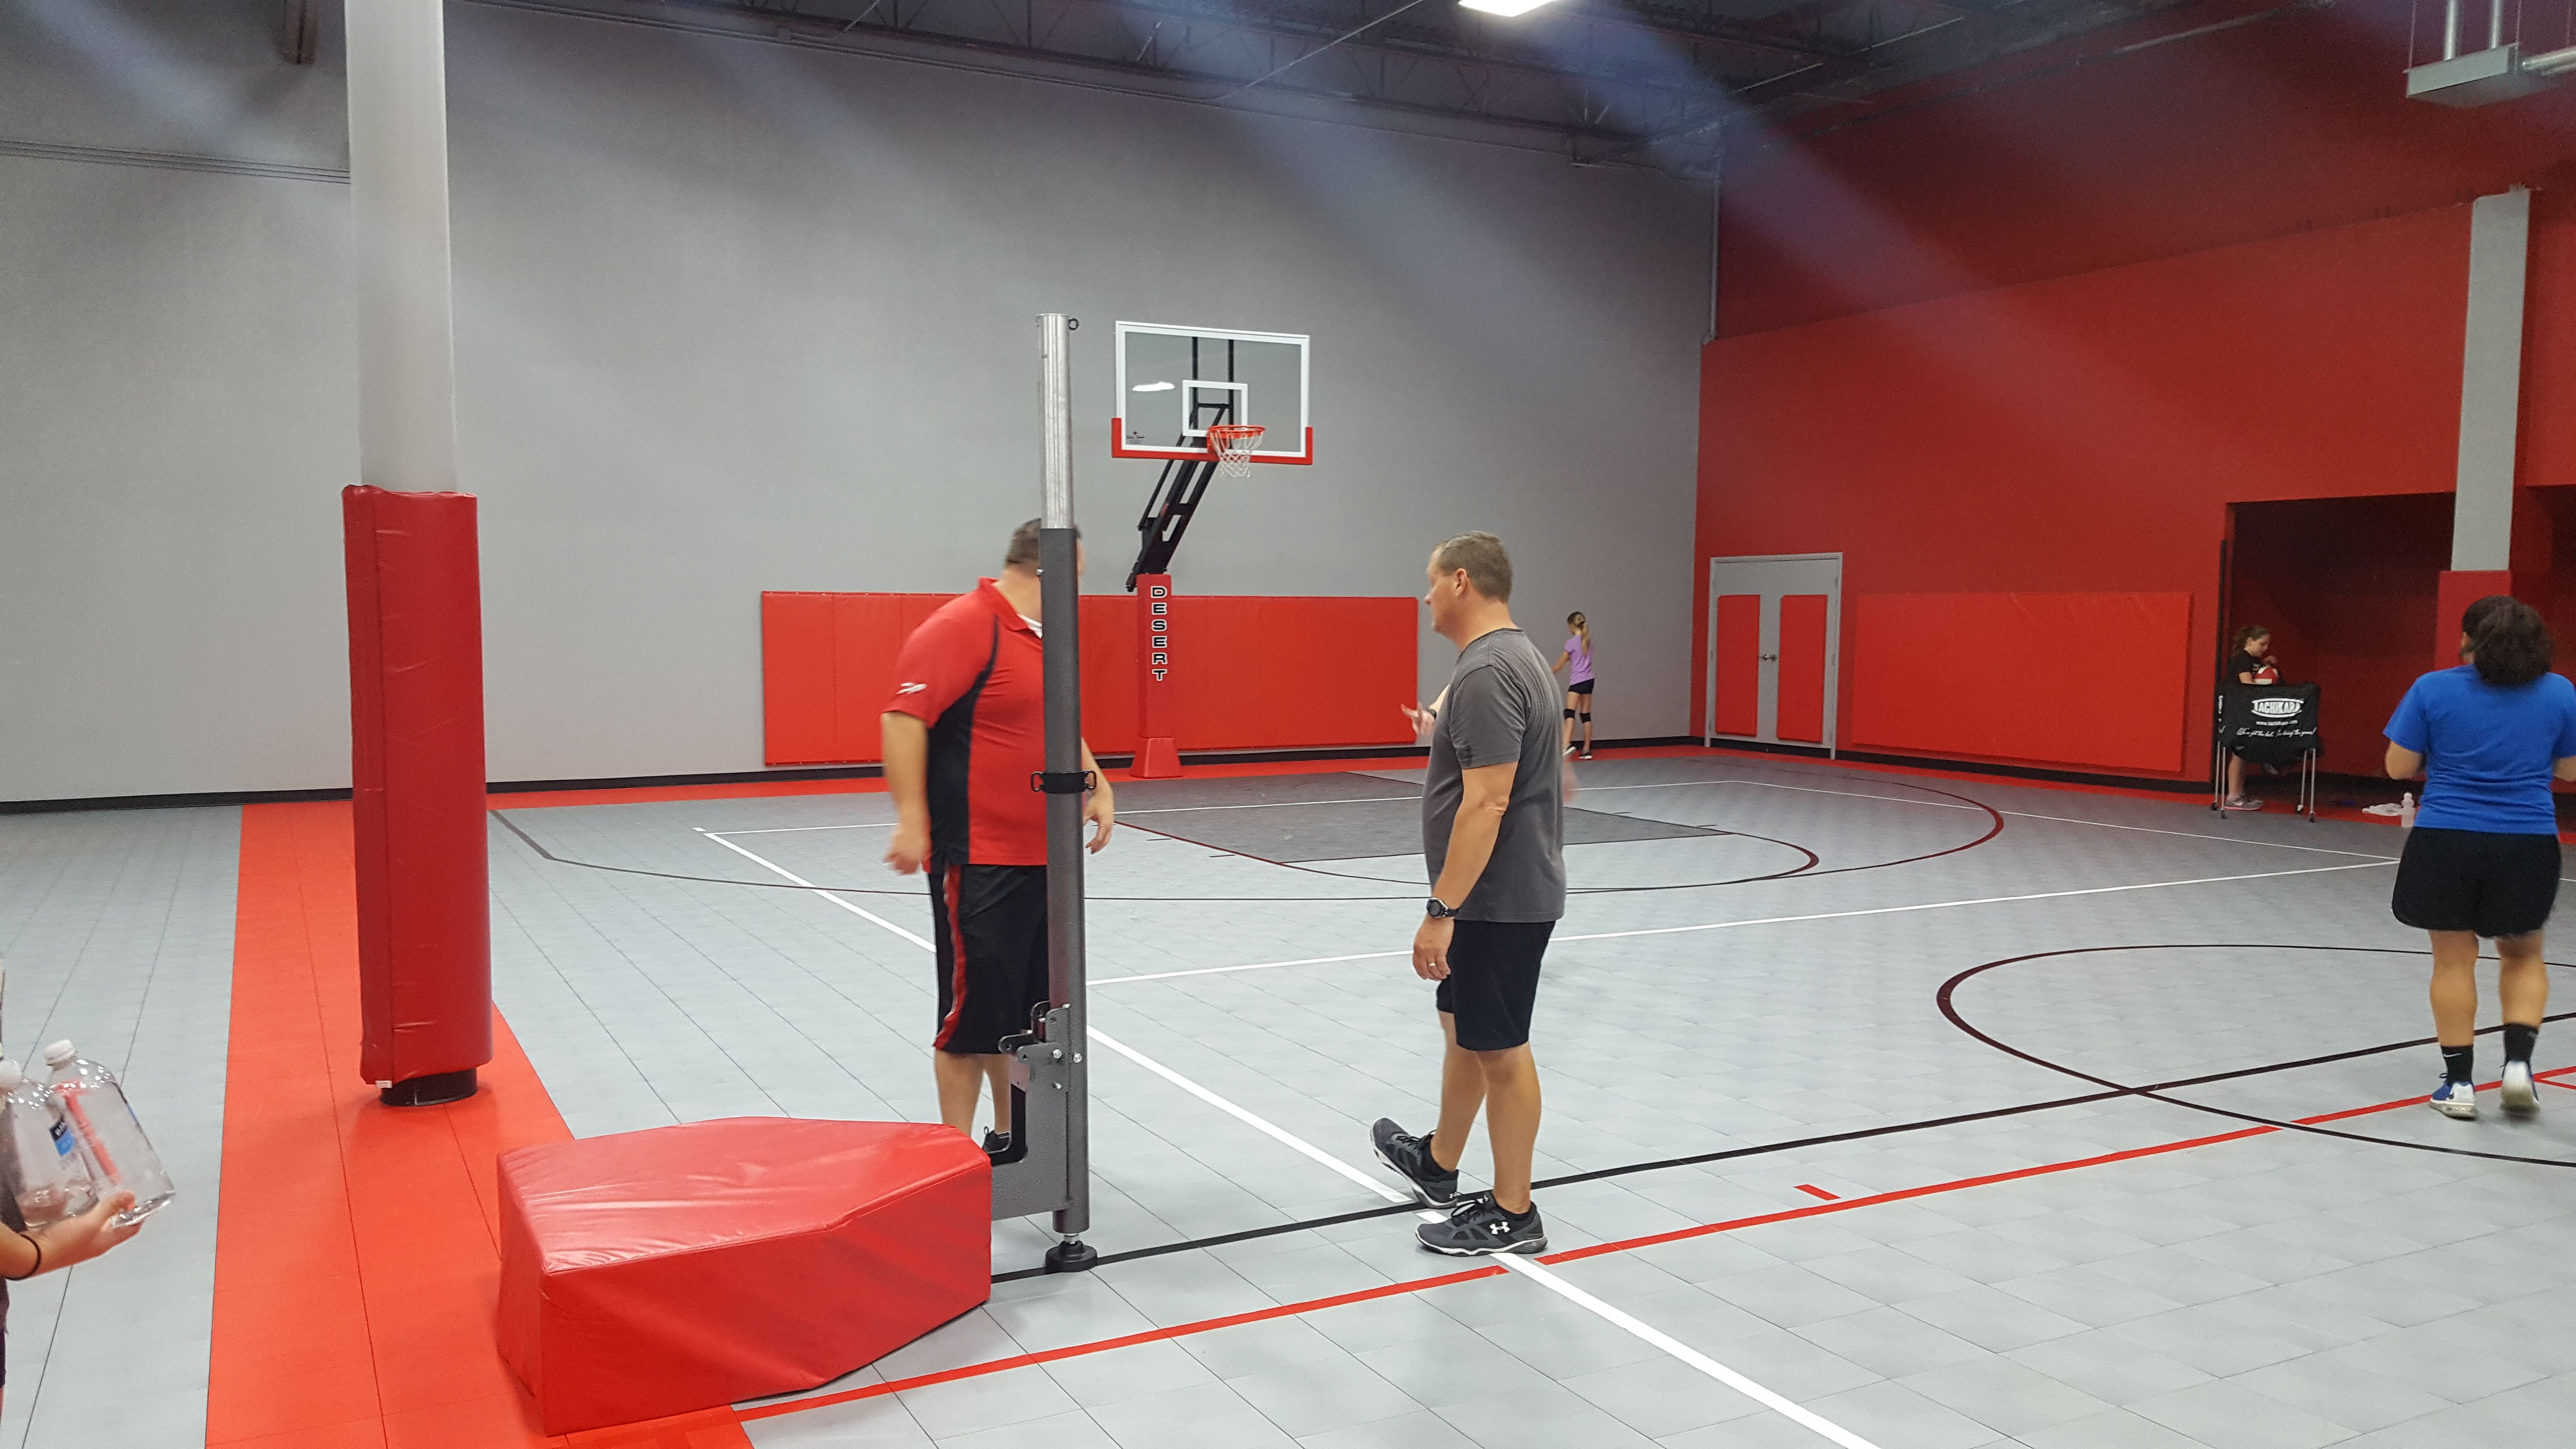 Here Is A Picture Of A Newly Completed Gymnasium In The Background Is A Titan Arena Adjustable Basketball Goal Basketball Room Volleyball Set Basketball Goals